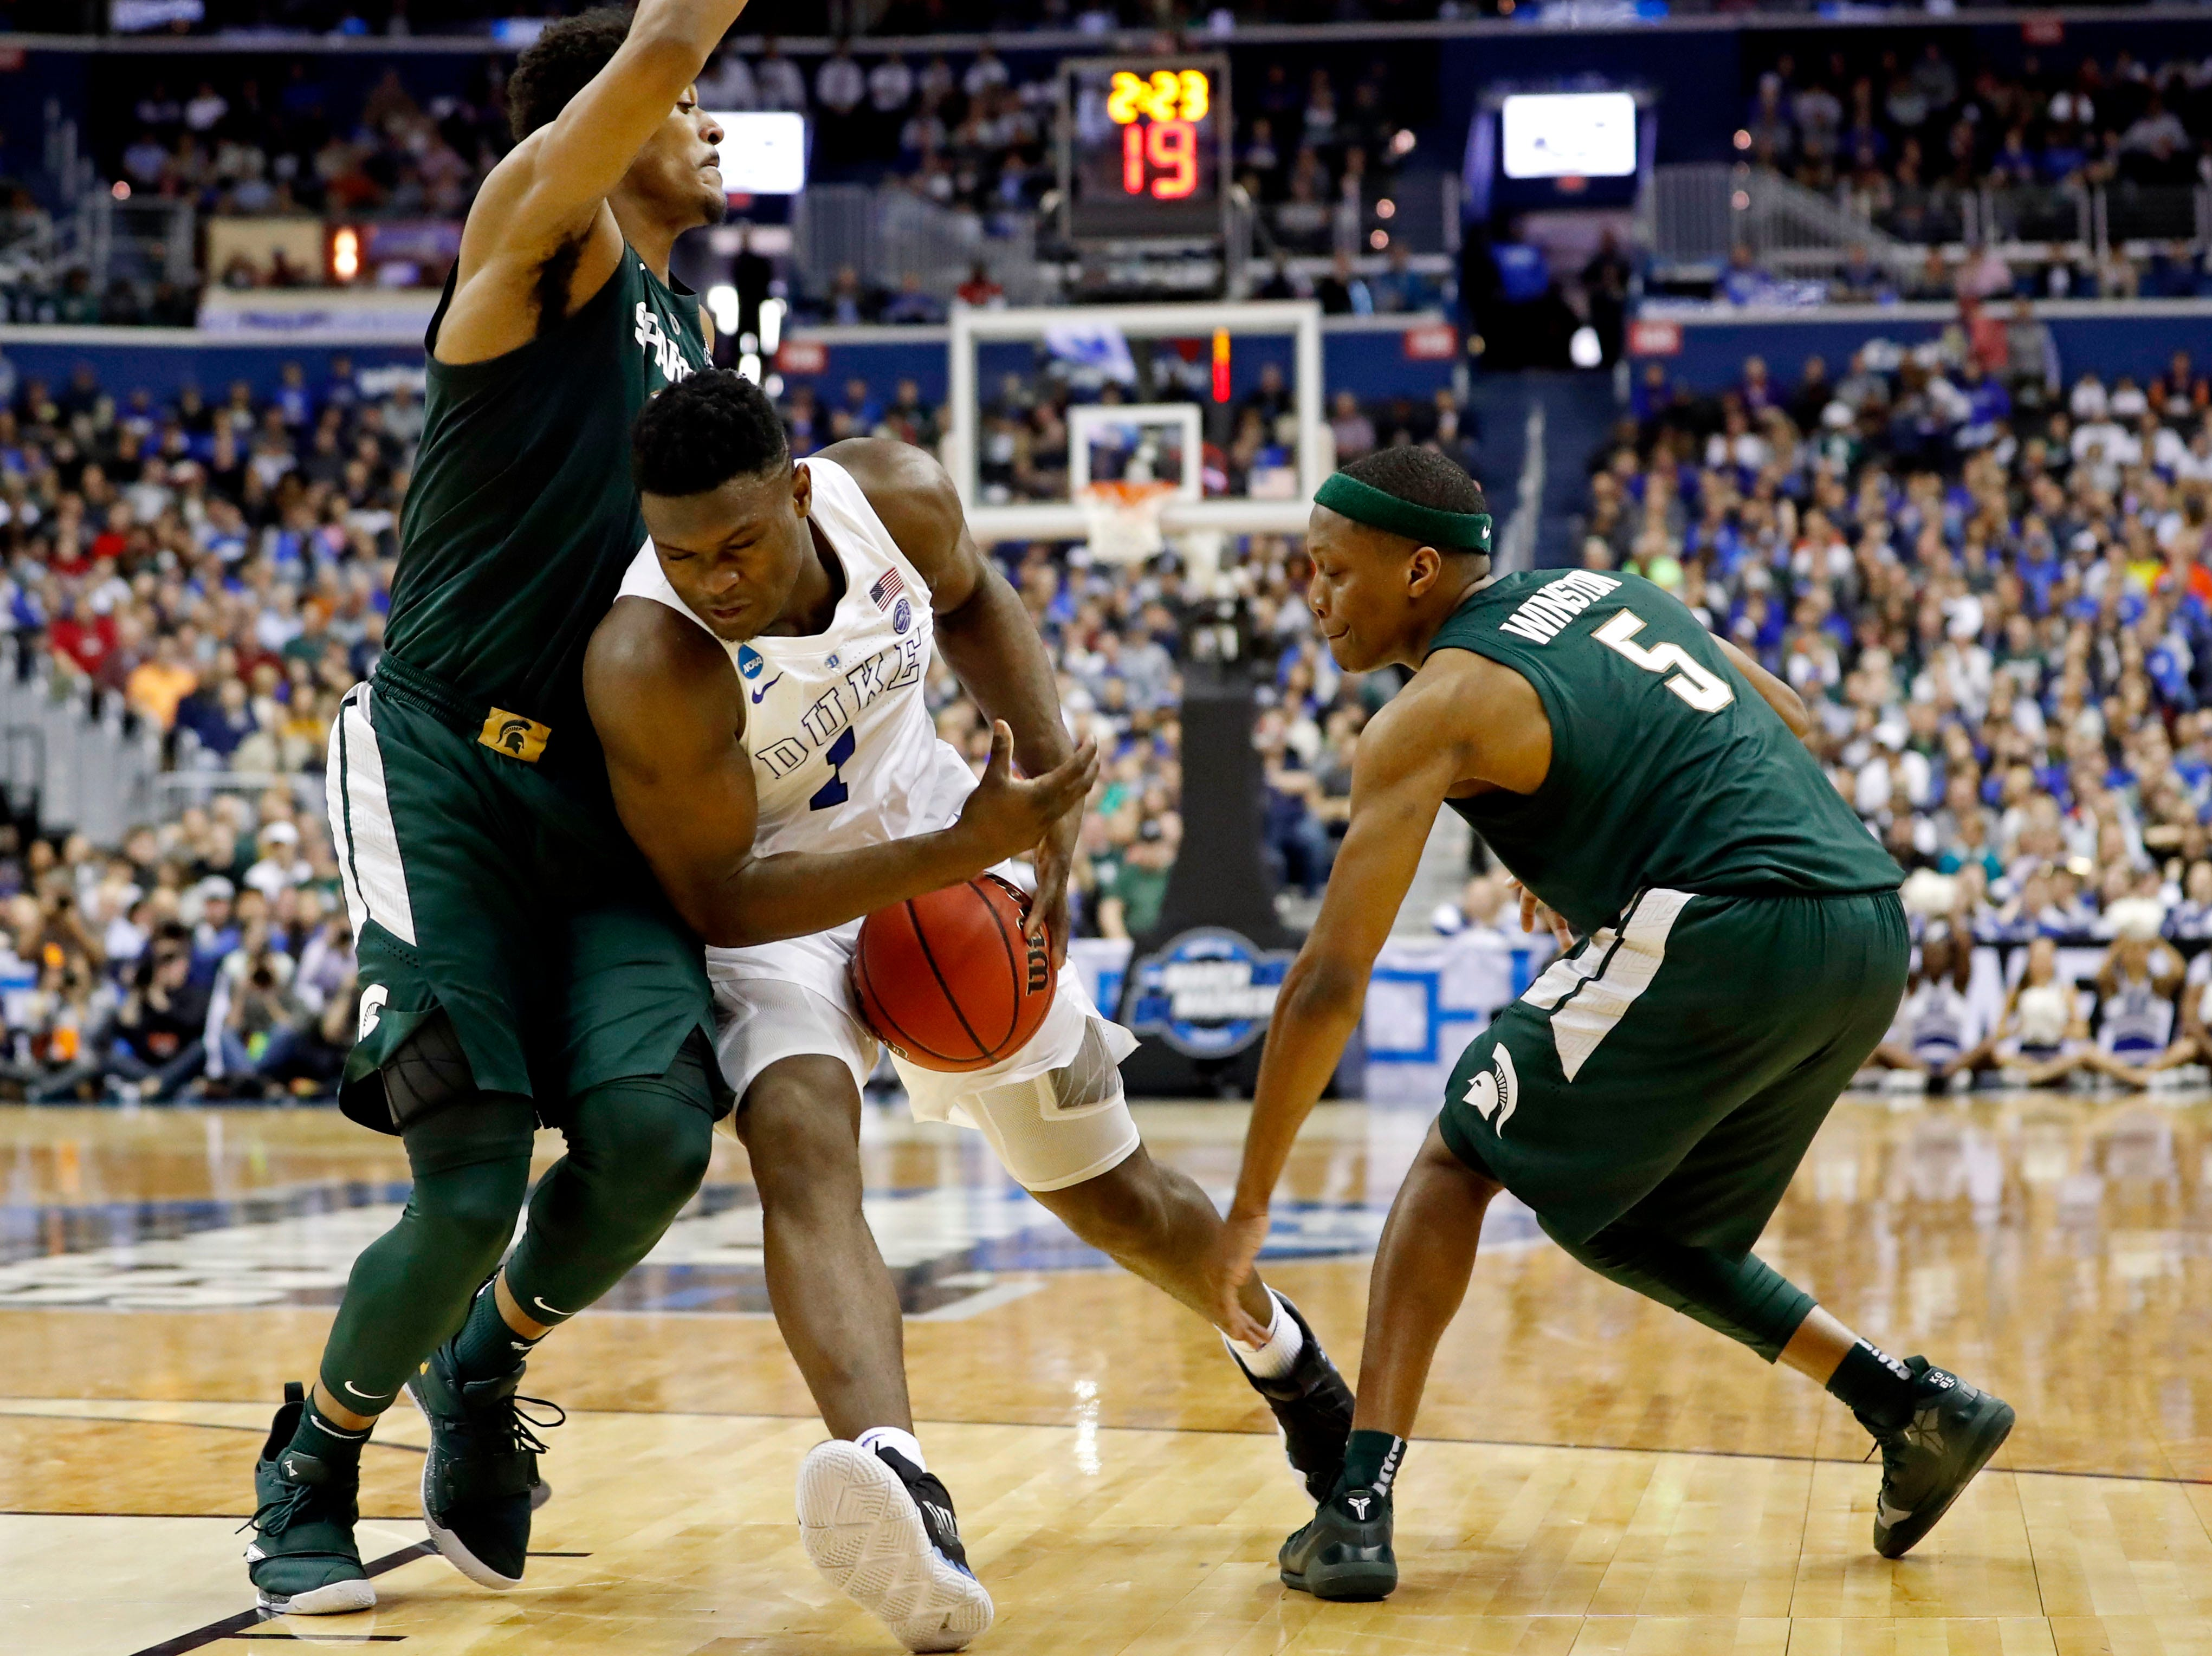 Mar 31, 2019; Washington, DC, USA; Duke Blue Devils forward Zion Williamson (1) drives to the basket against Michigan State Spartans guard Cassius Winston (5) during the first half in the championship game of the east regional of the 2019 NCAA Tournament at Capital One Arena. Mandatory Credit: Geoff Burke-USA TODAY Sports